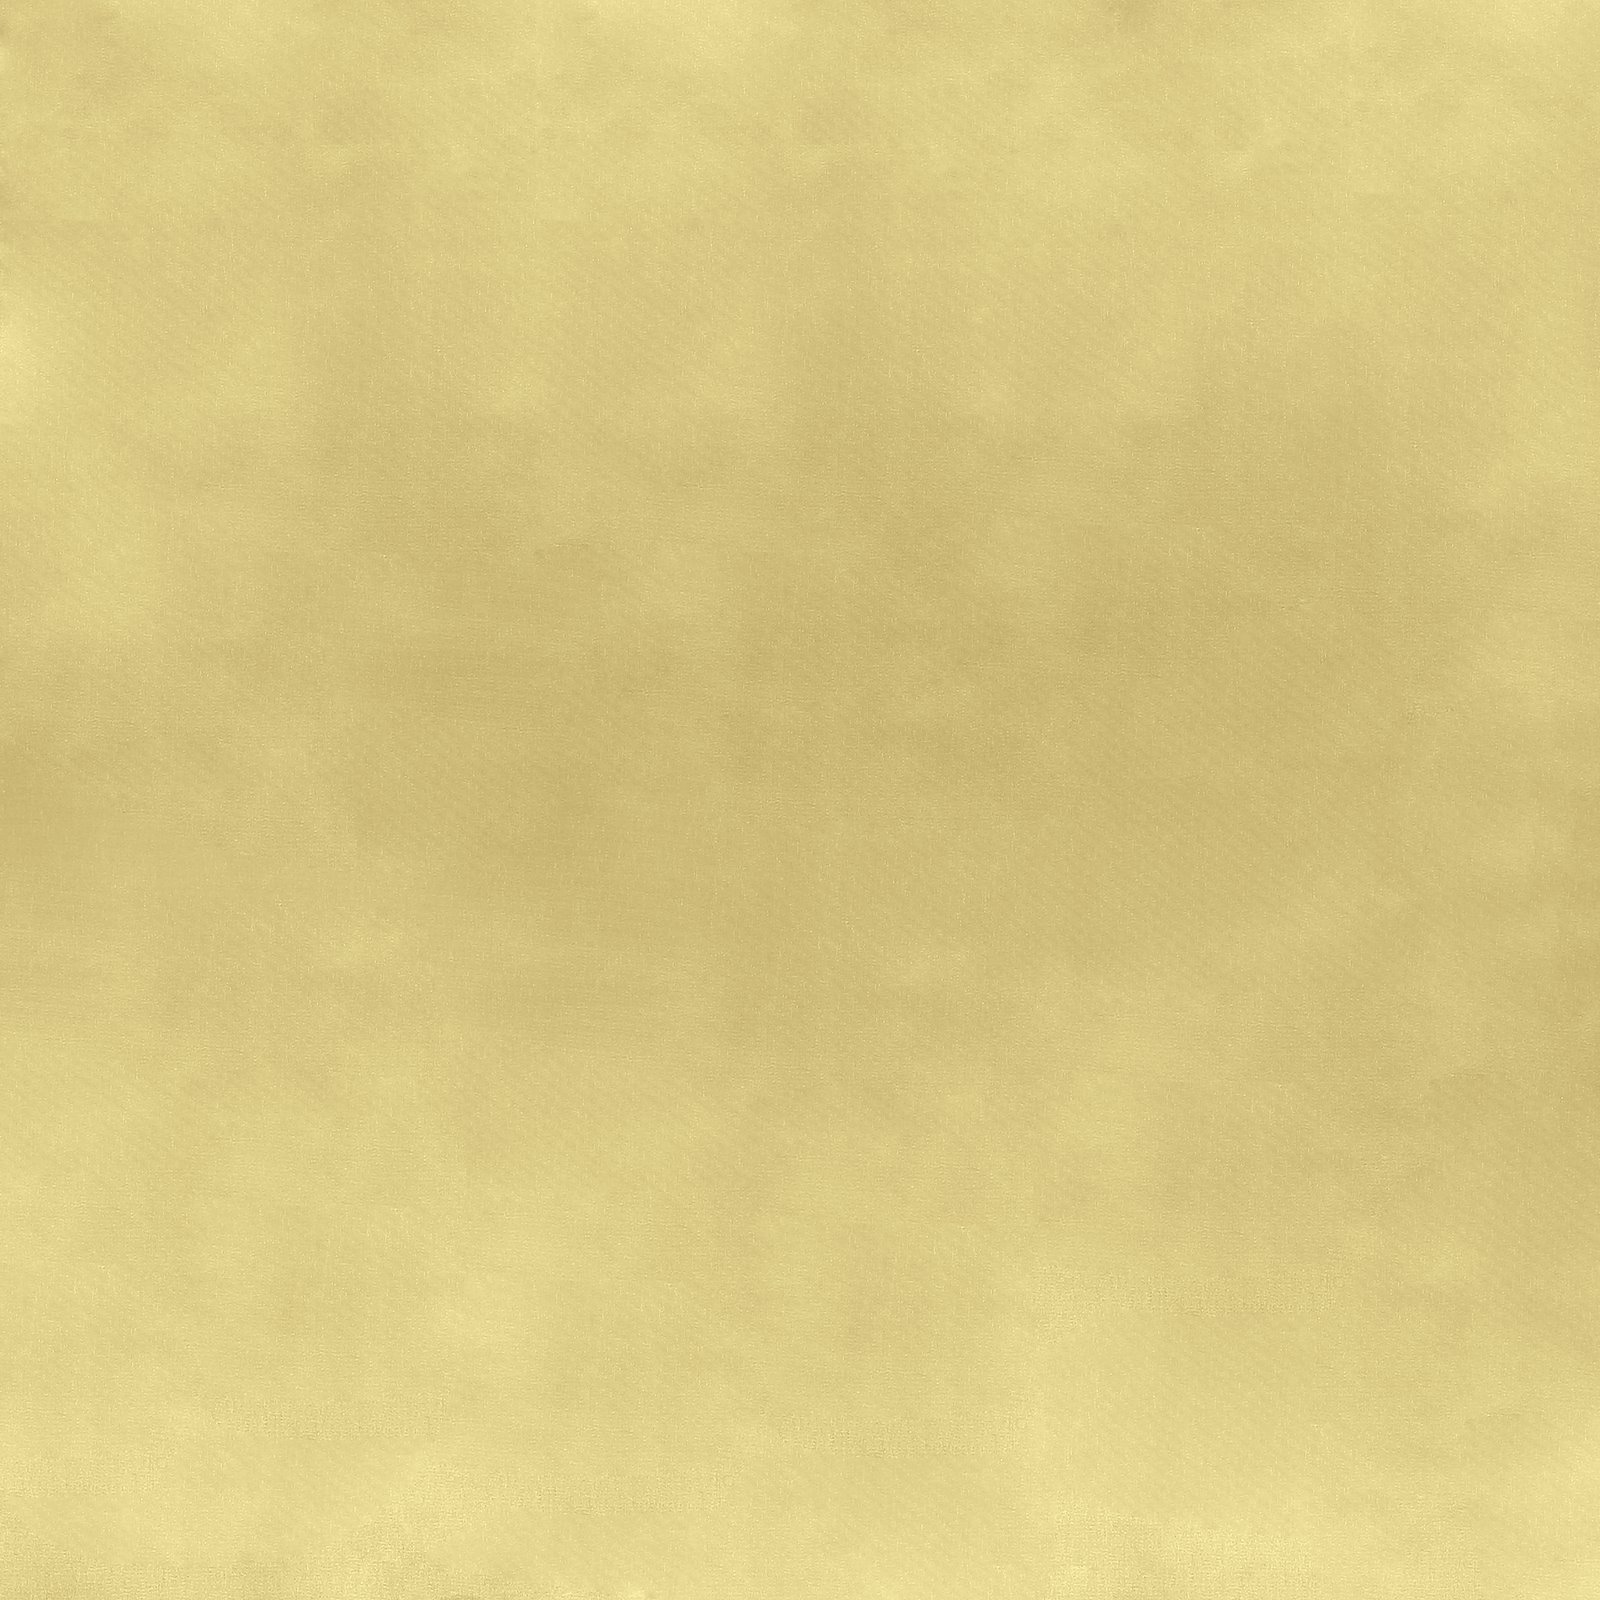 Satin lining light olive yellow 7034_pack_solid